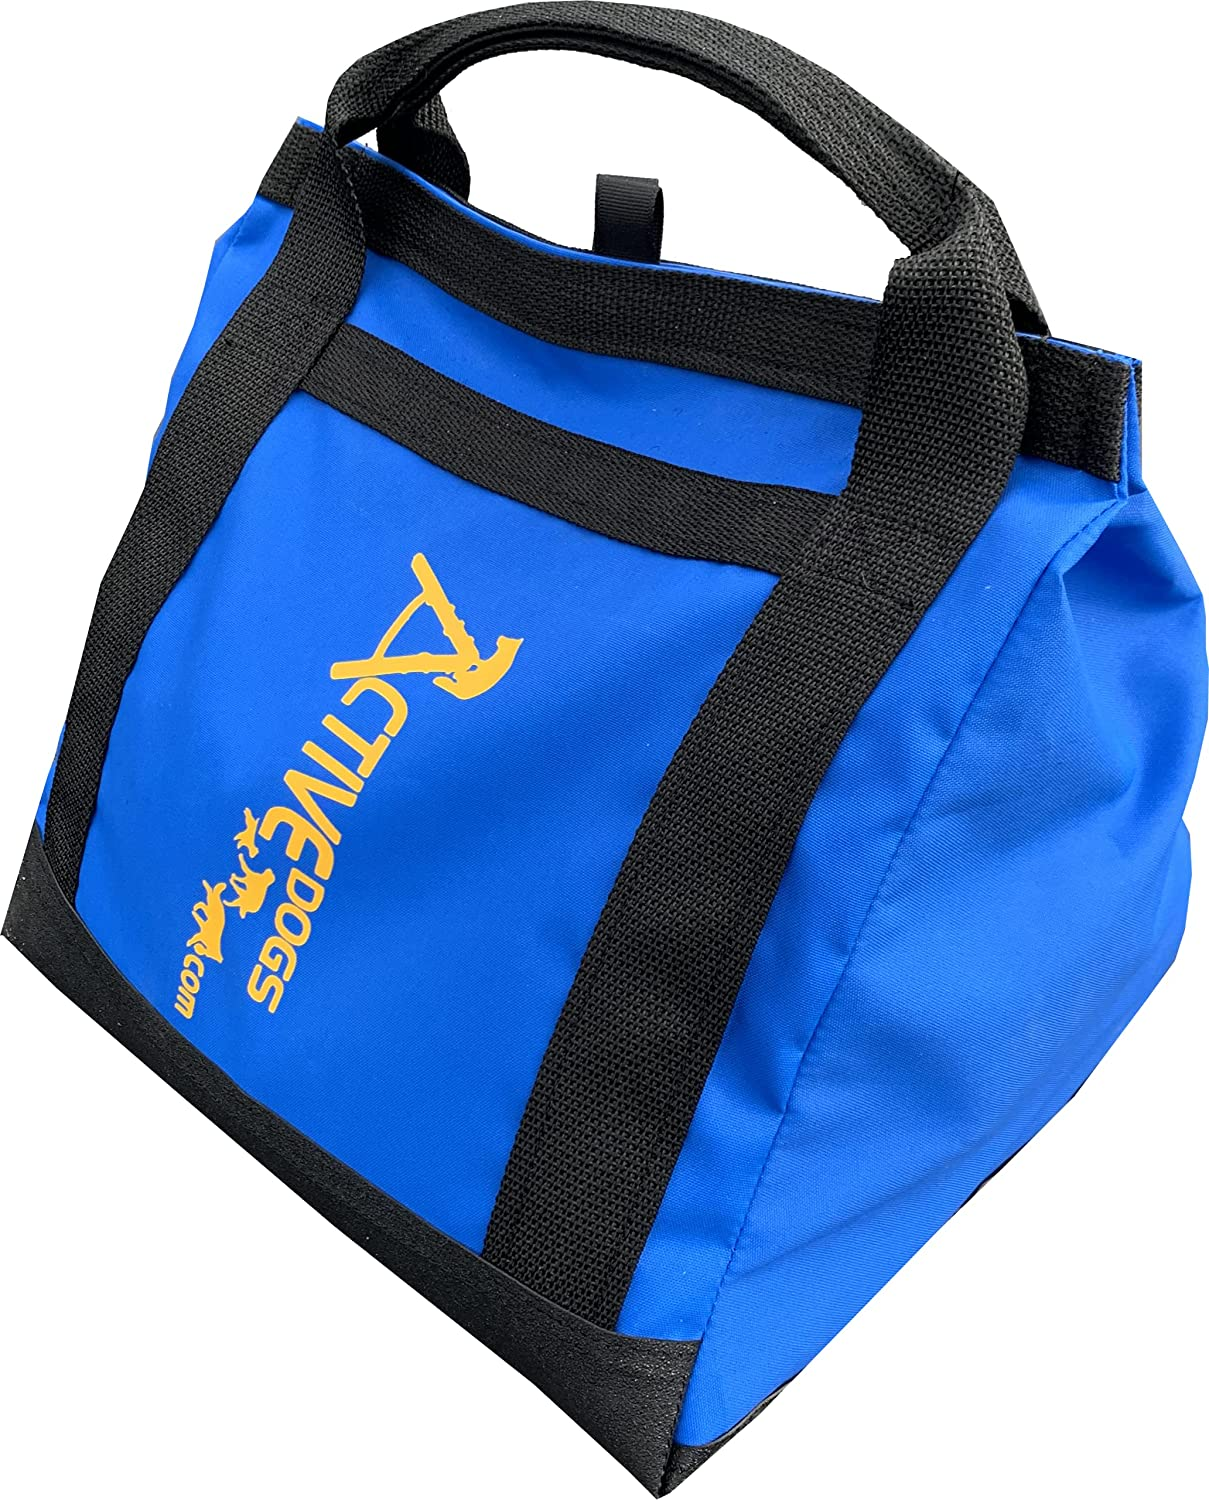 ActiveDogs Agility Low-Gravity Large Sand lowest price Bag- Bag Al sold out. 35# Capacity